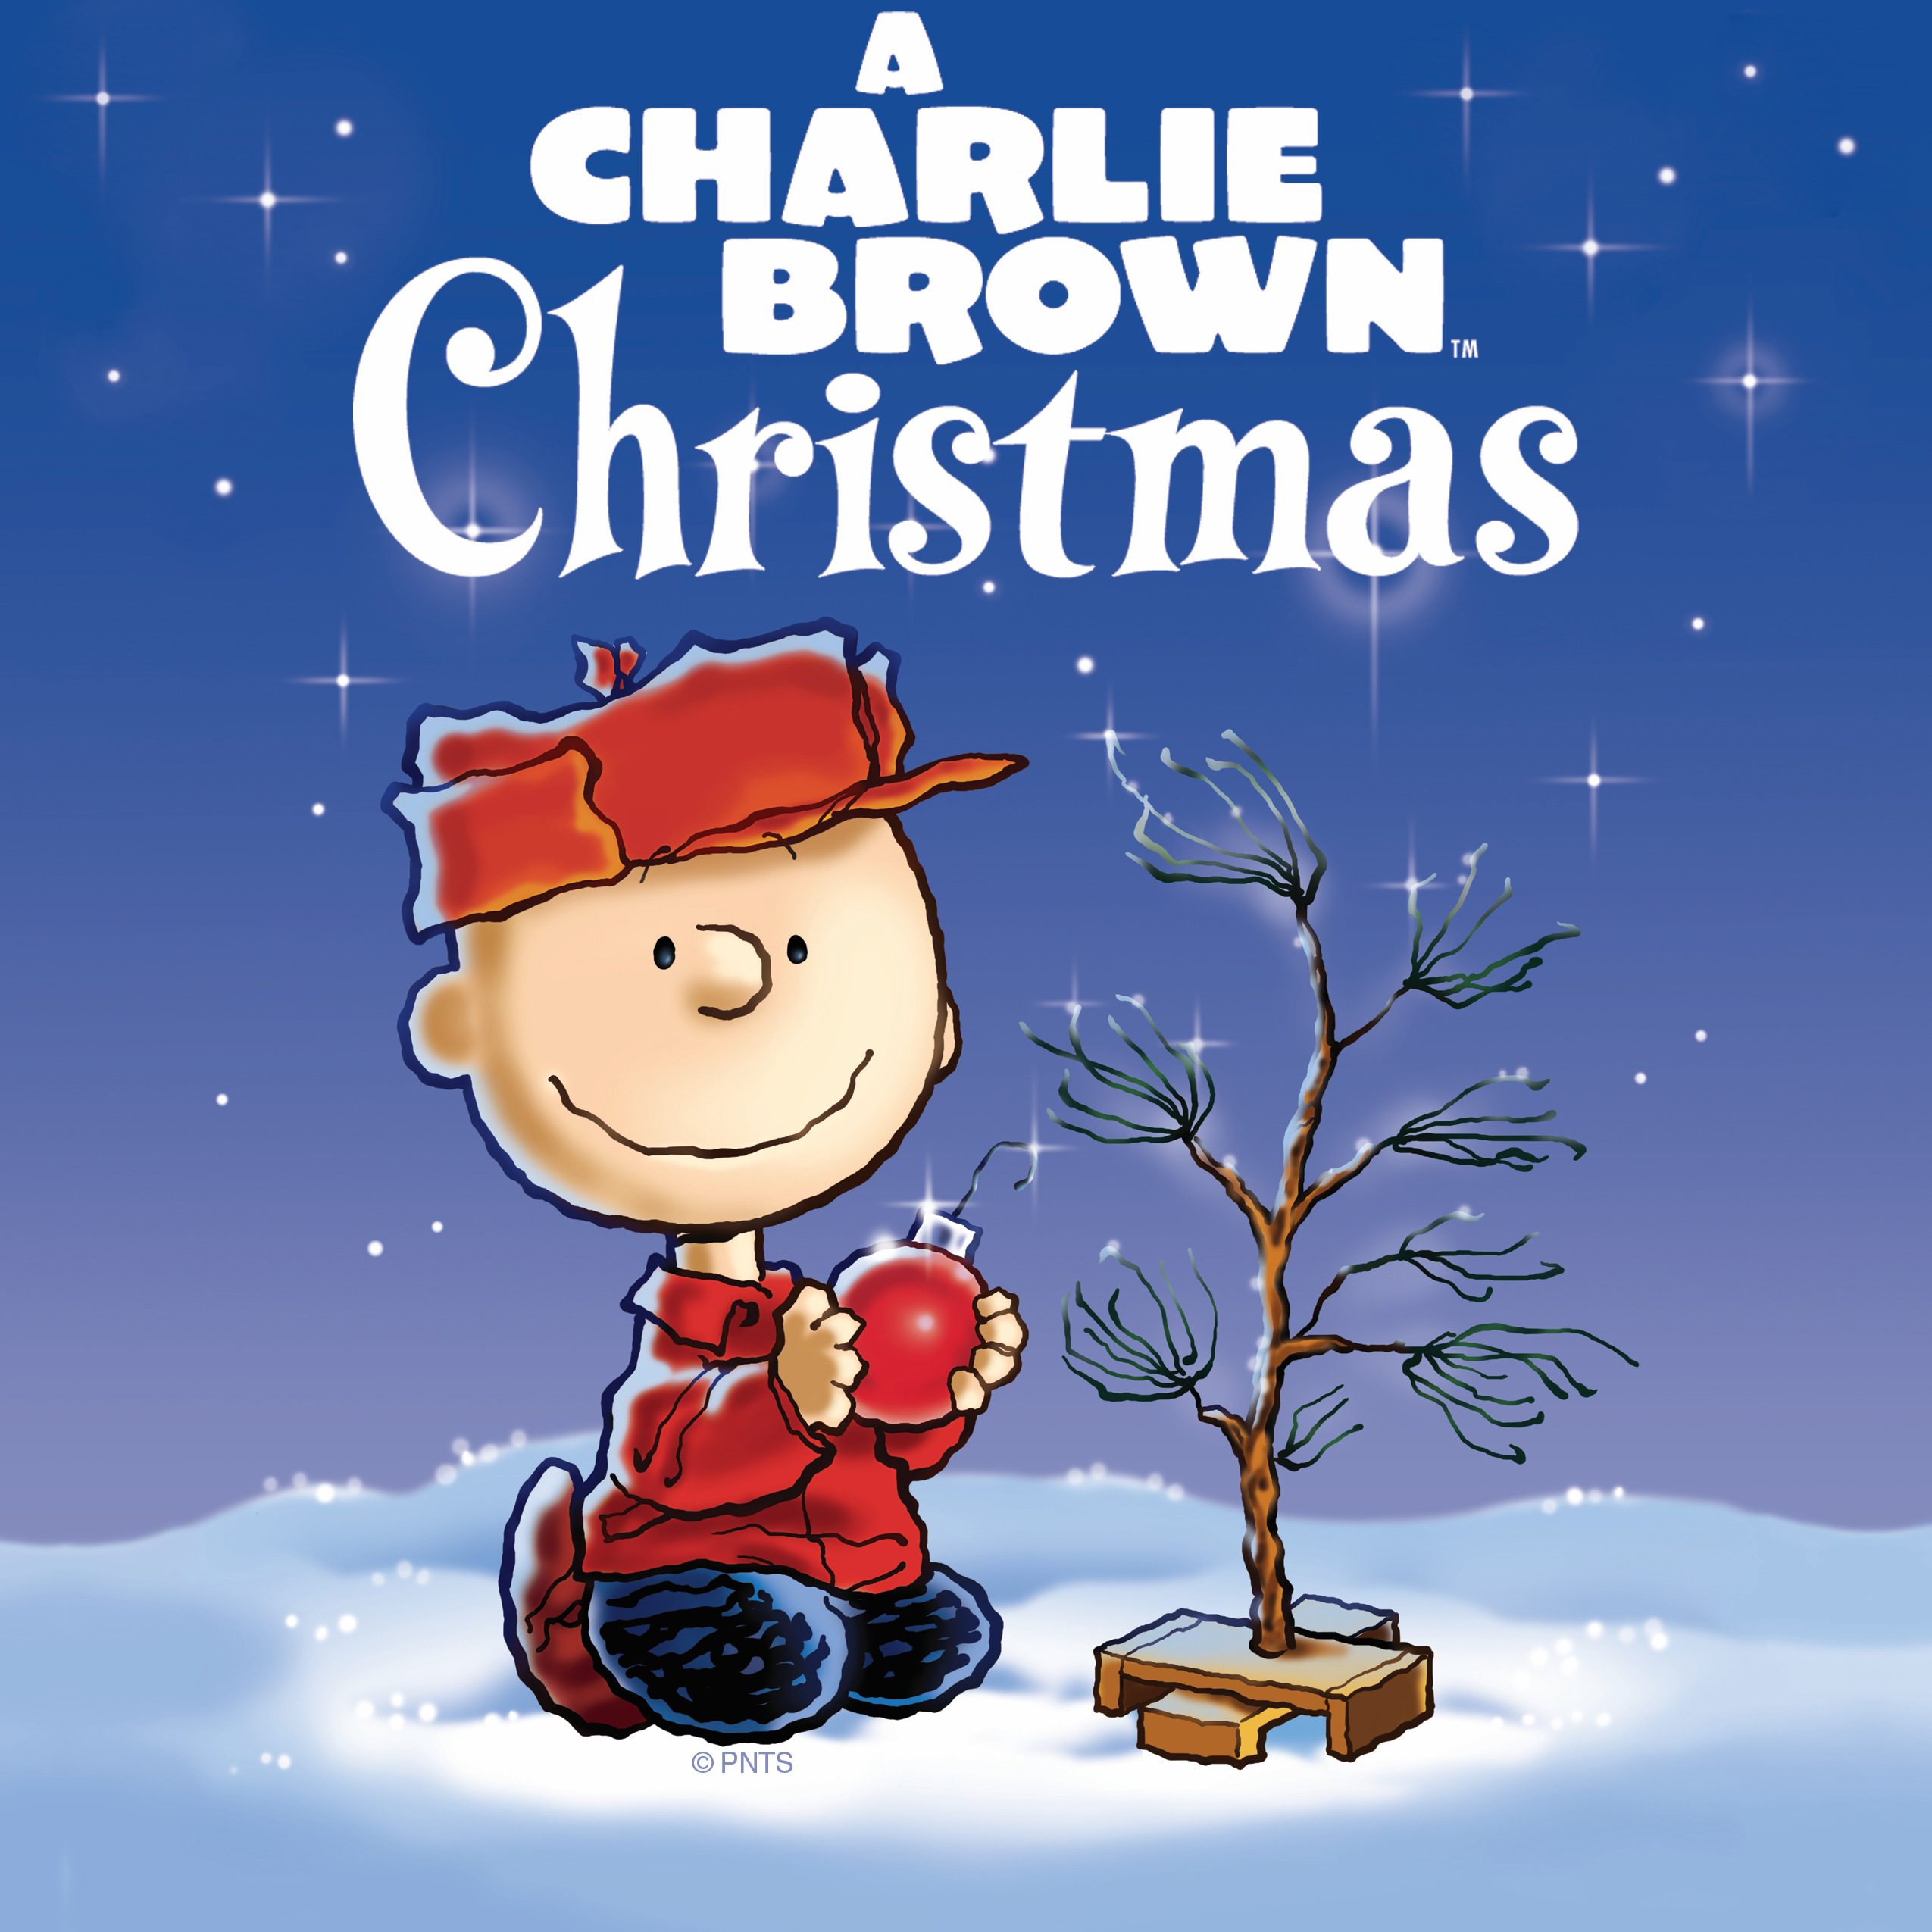 Charlie Brown Christmas Images.A Charlie Brown Christmas Presented By Henrico Theatre Company